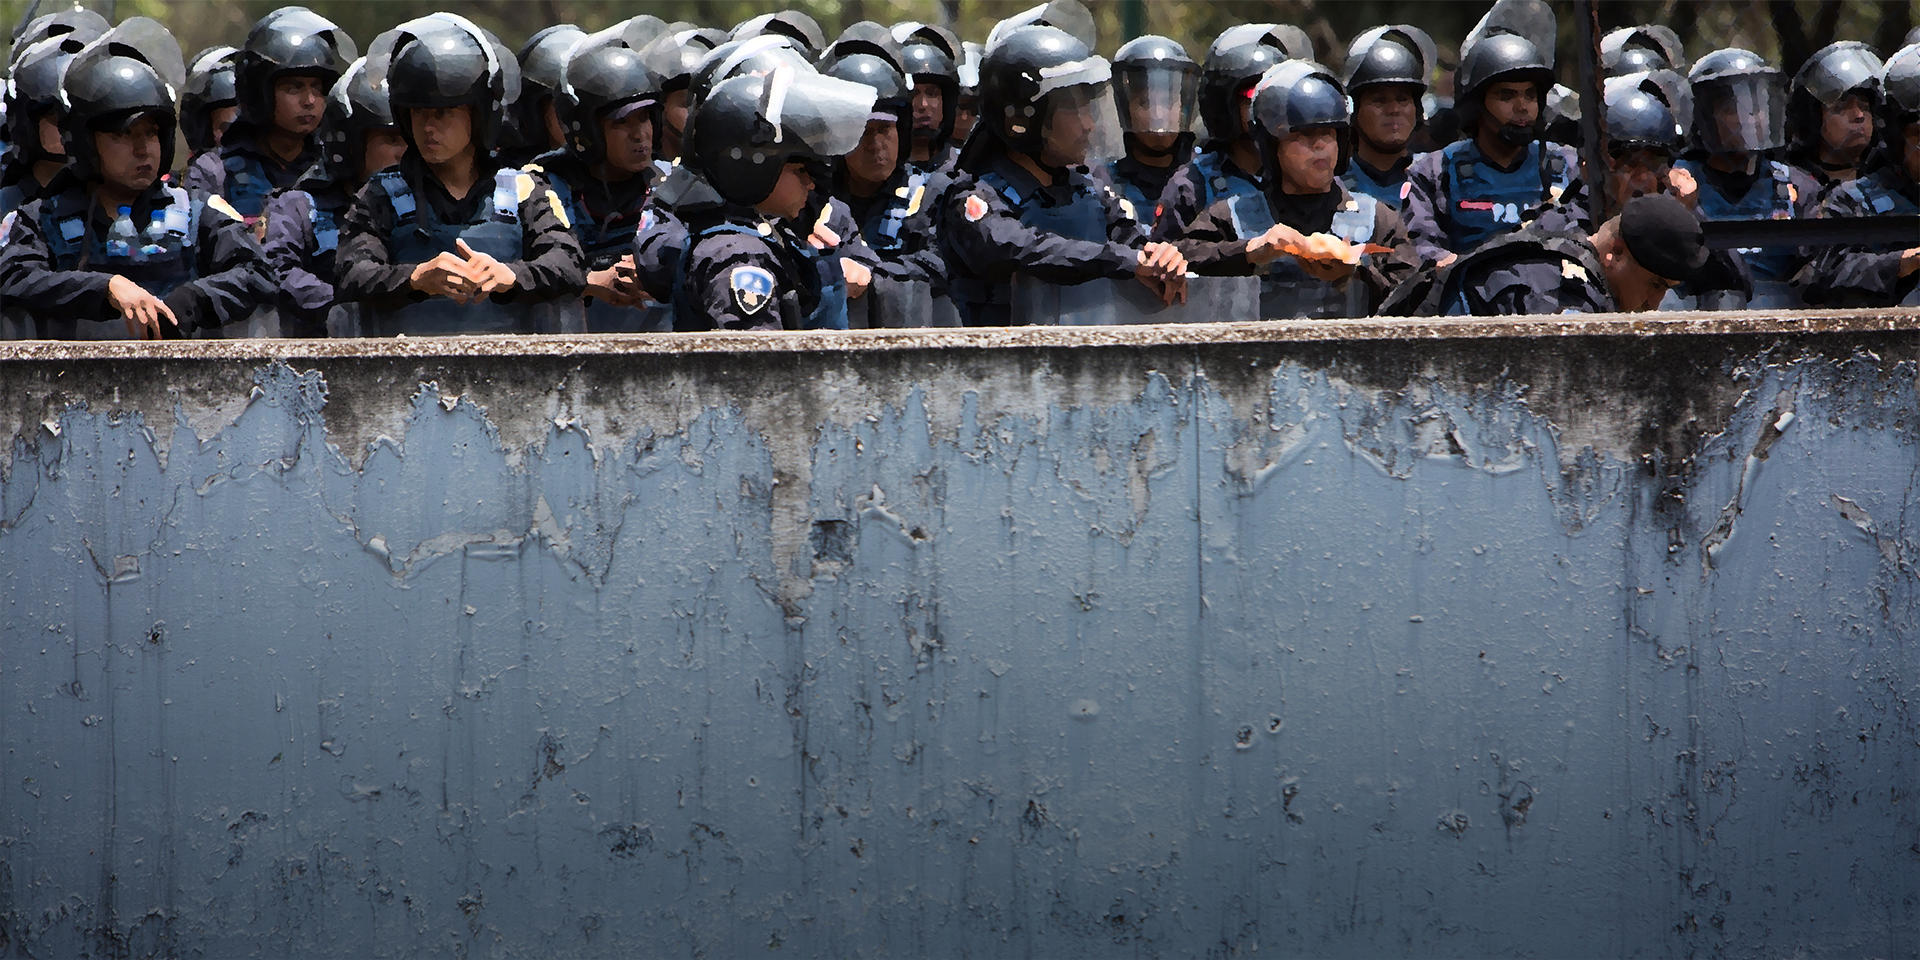 Police officers in Mexico City